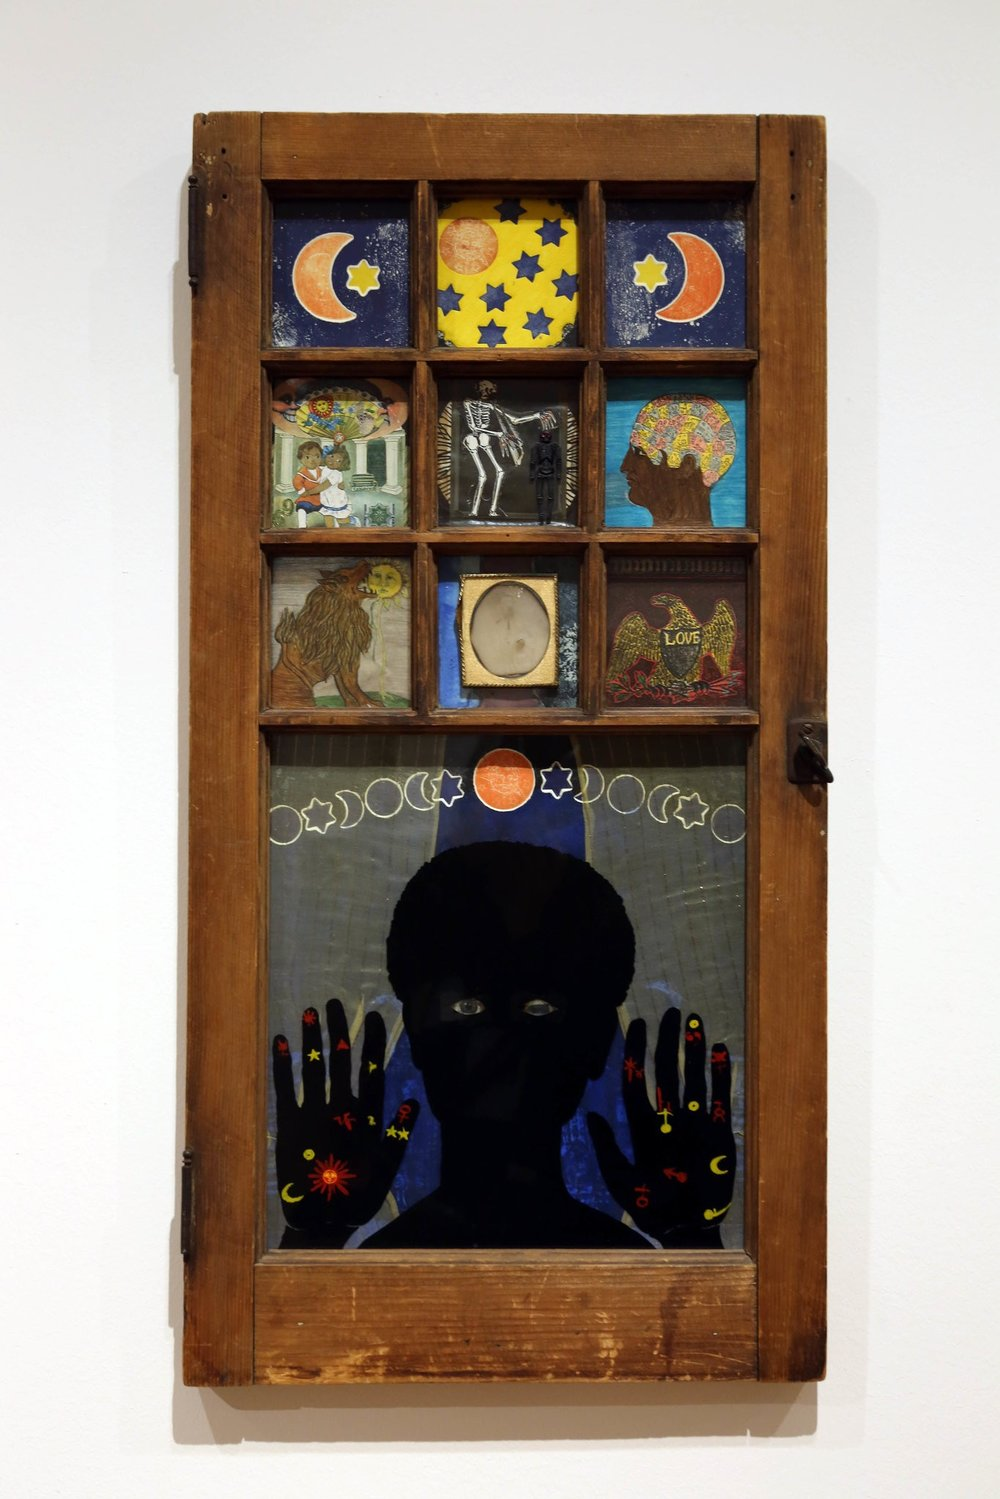 """Betye Saar's """"Black Girl's Window"""" (1969), featured in the exhibition """"Take an Object"""" at MoMA.CreditHiroko Masuike/The New York Times"""